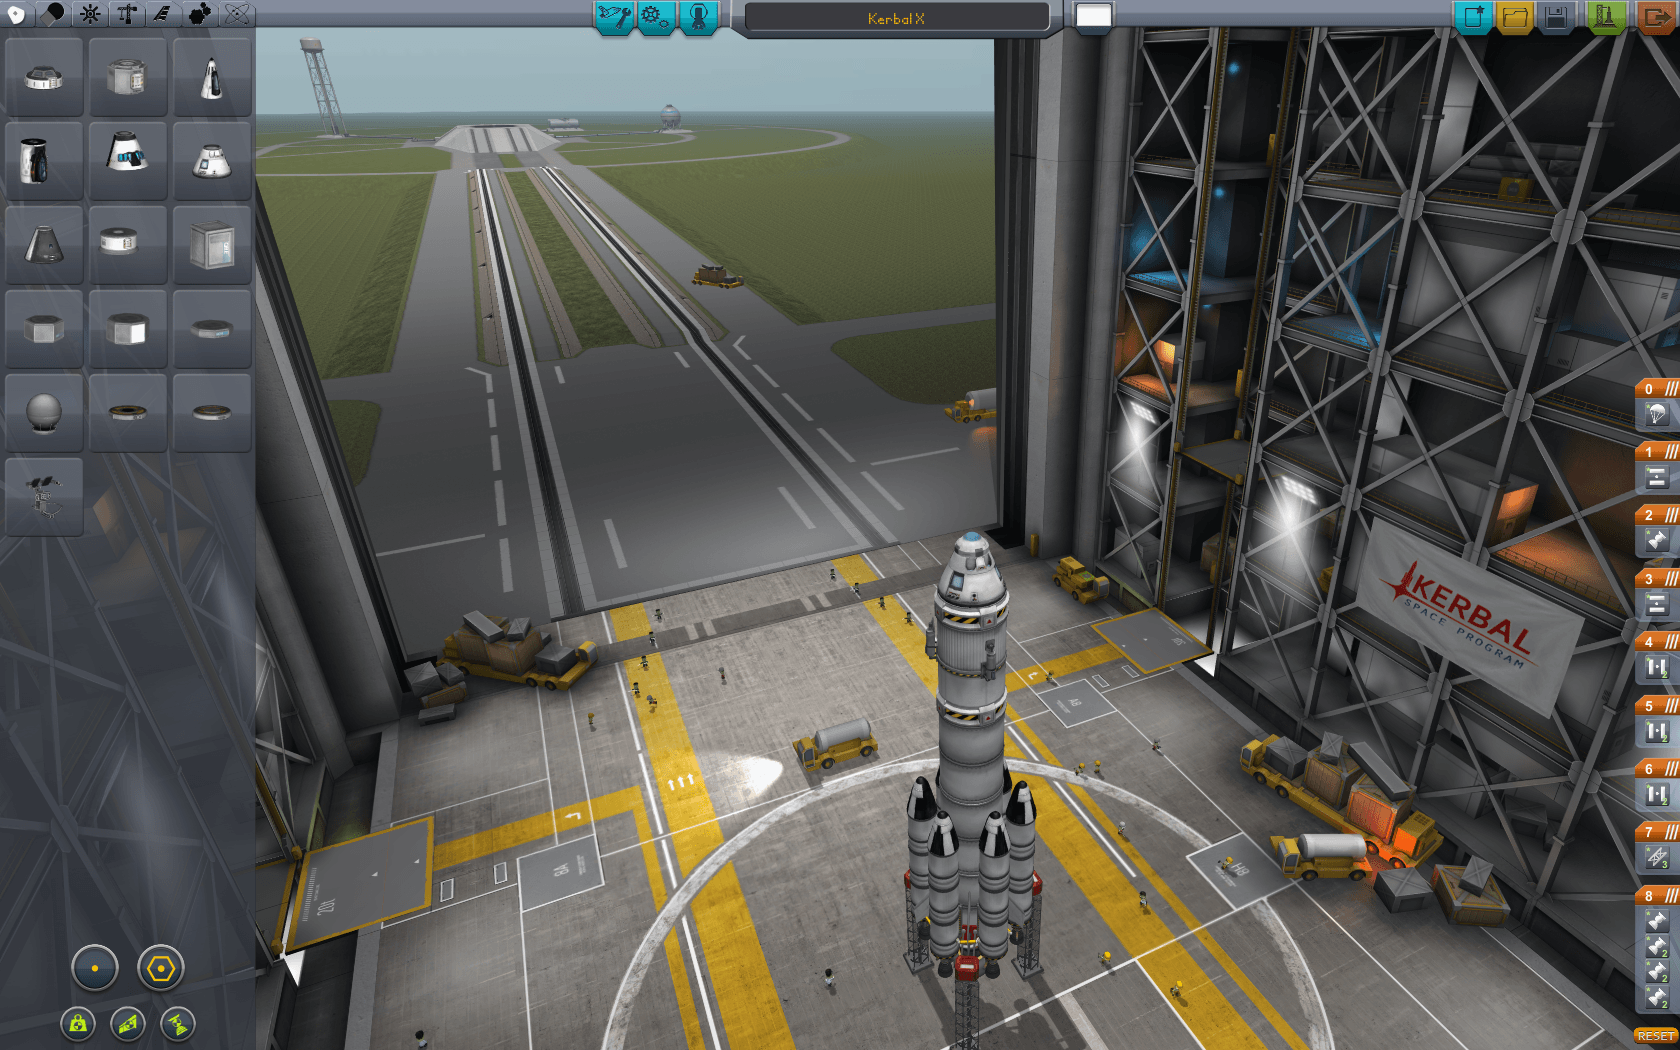 kerbal space program vehicle assembly